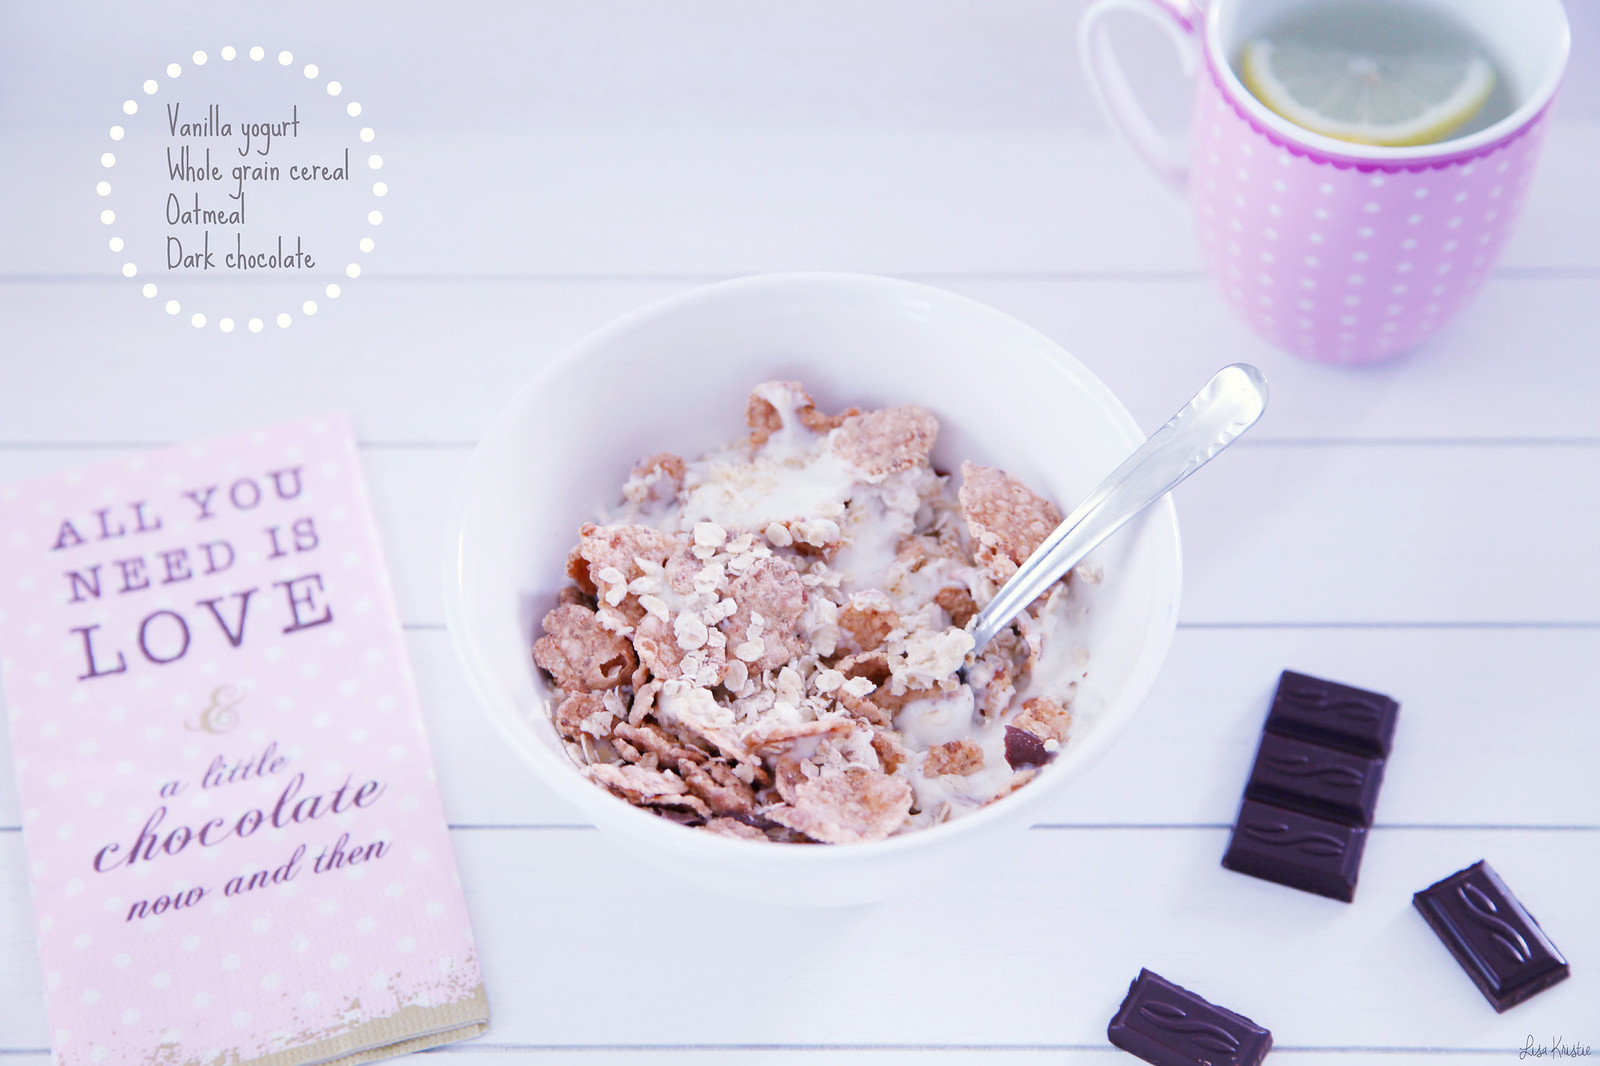 closeup healthy snack bowl tray vanilla yogurt whole grain cereal oatmeal dark chocolate lemon tea pink cup clayre & eef white wooden girly paper napkin all you need is love and a little bit of chocolate now and then recipe home lifestyle blog